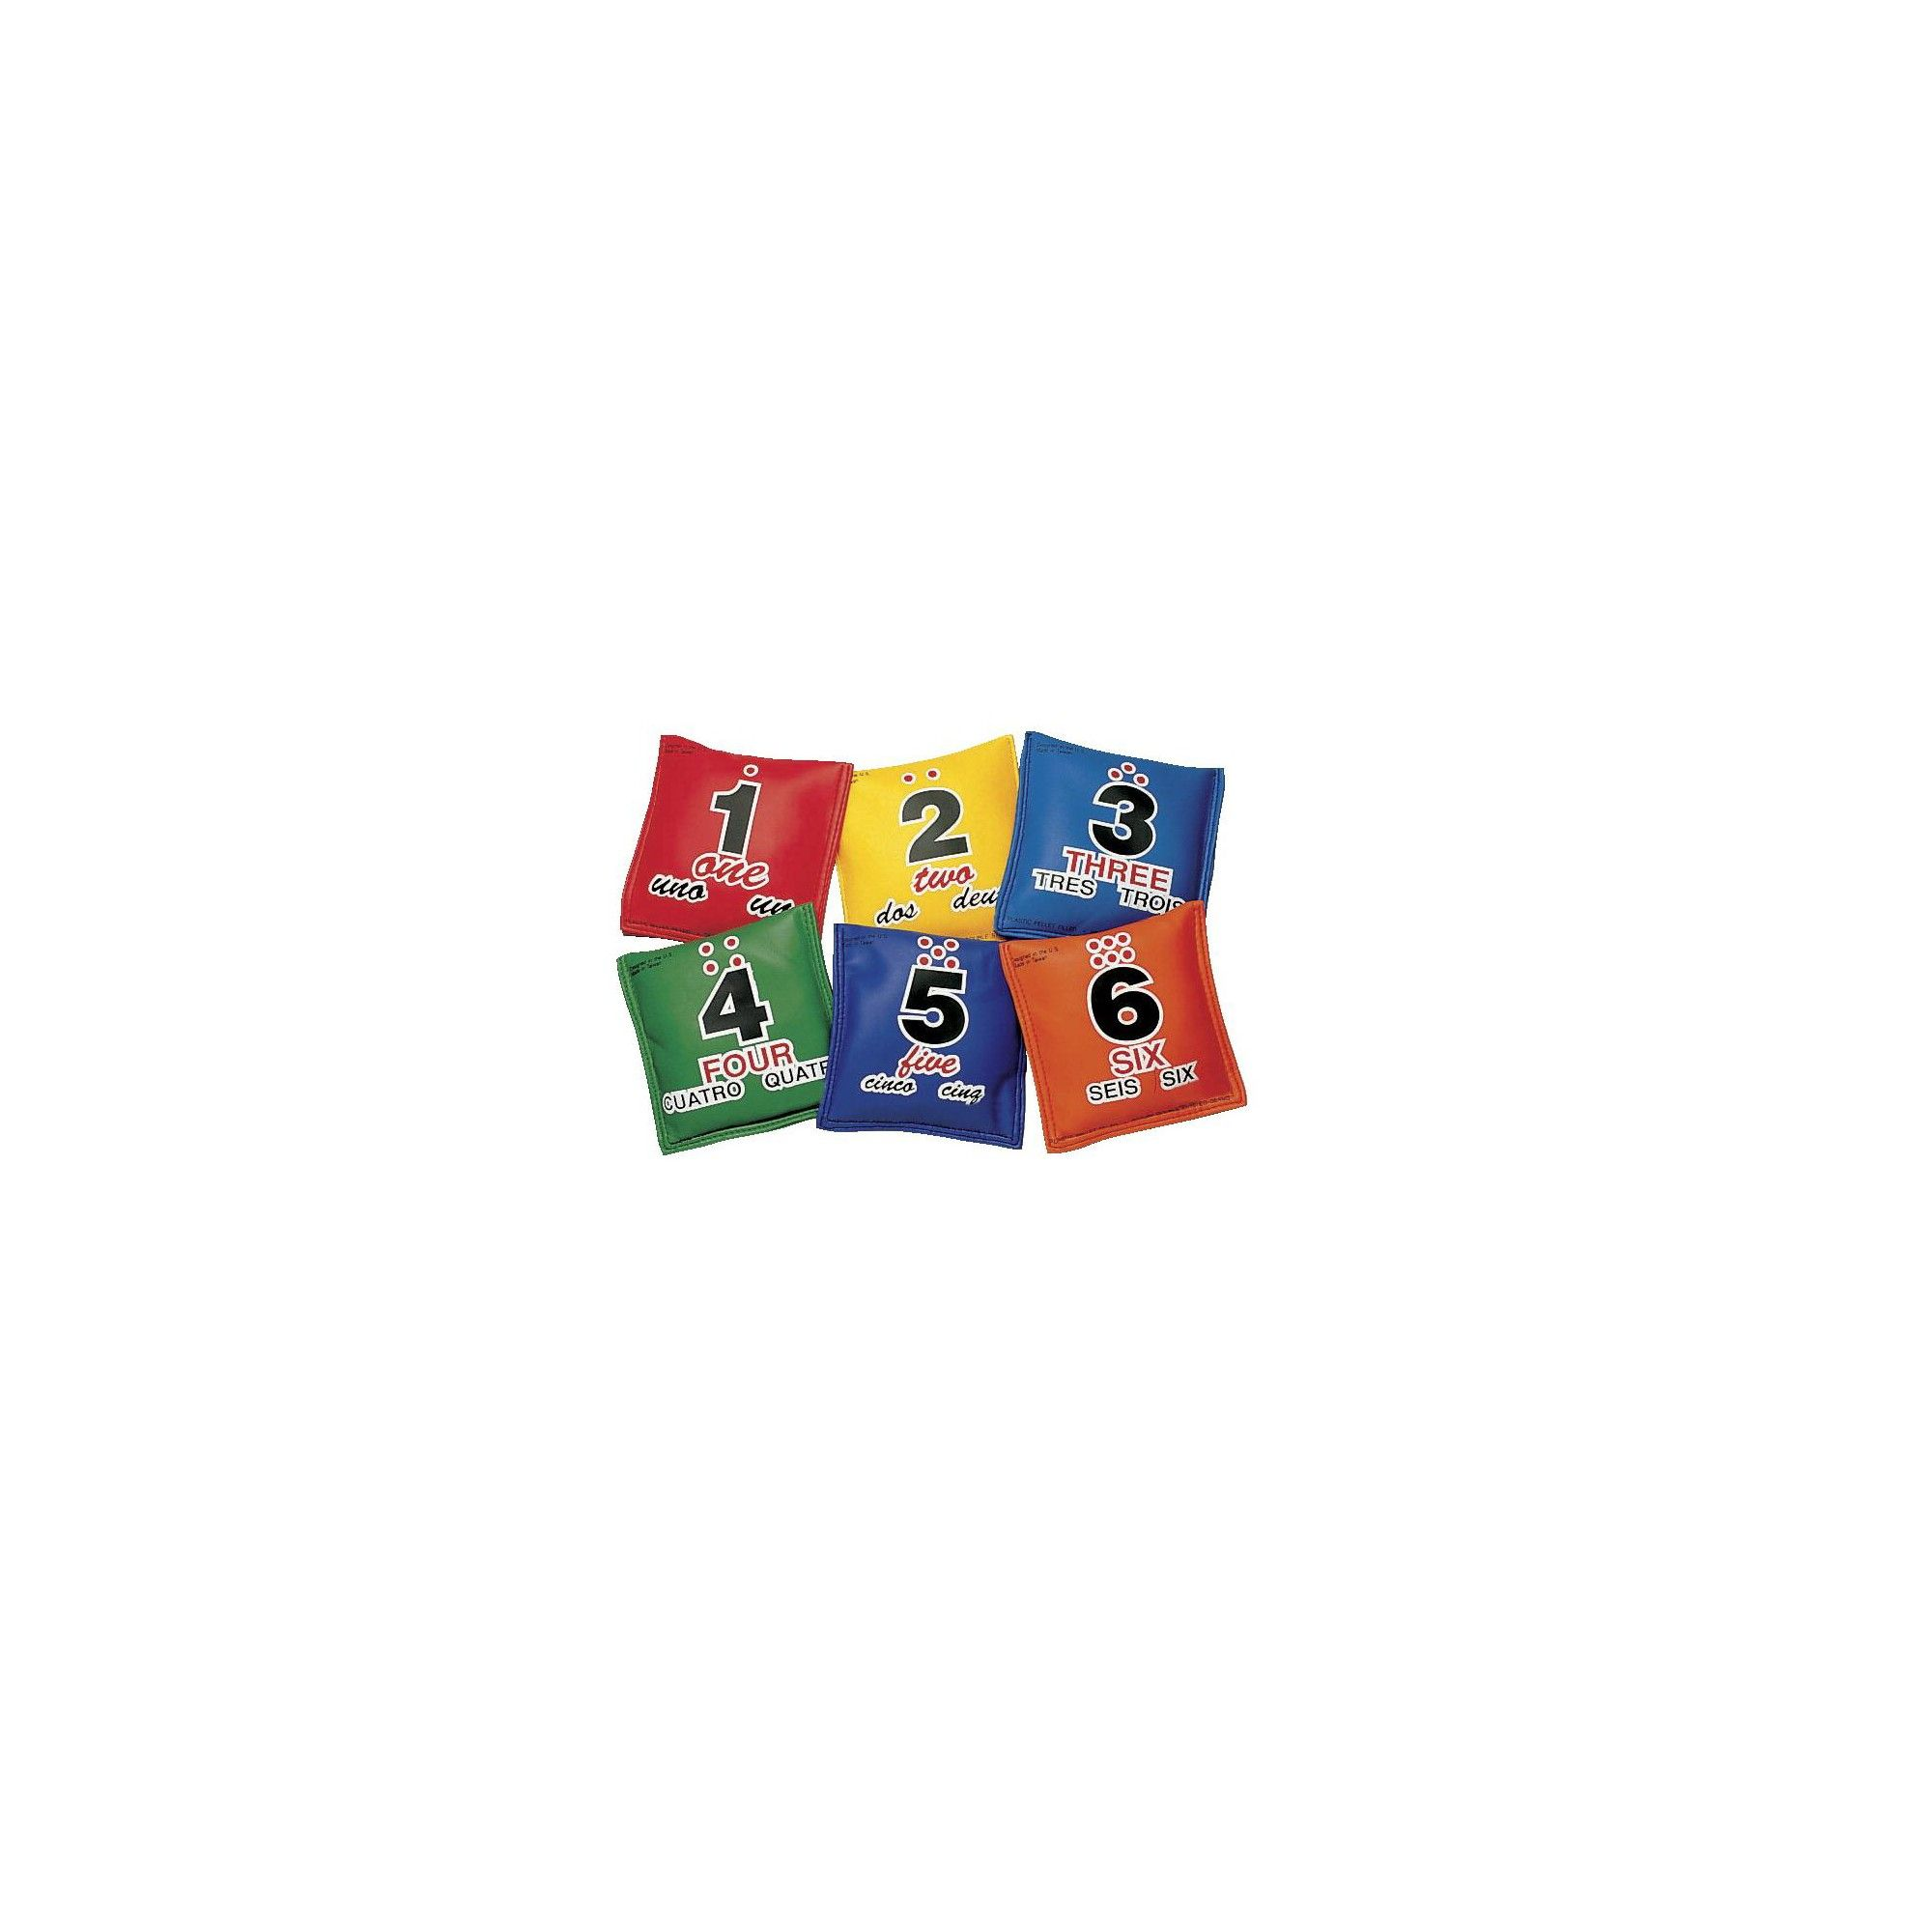 Sportime Tri-Lingual Sequencing Educational Beanbags, Assorted Colors, set of 6